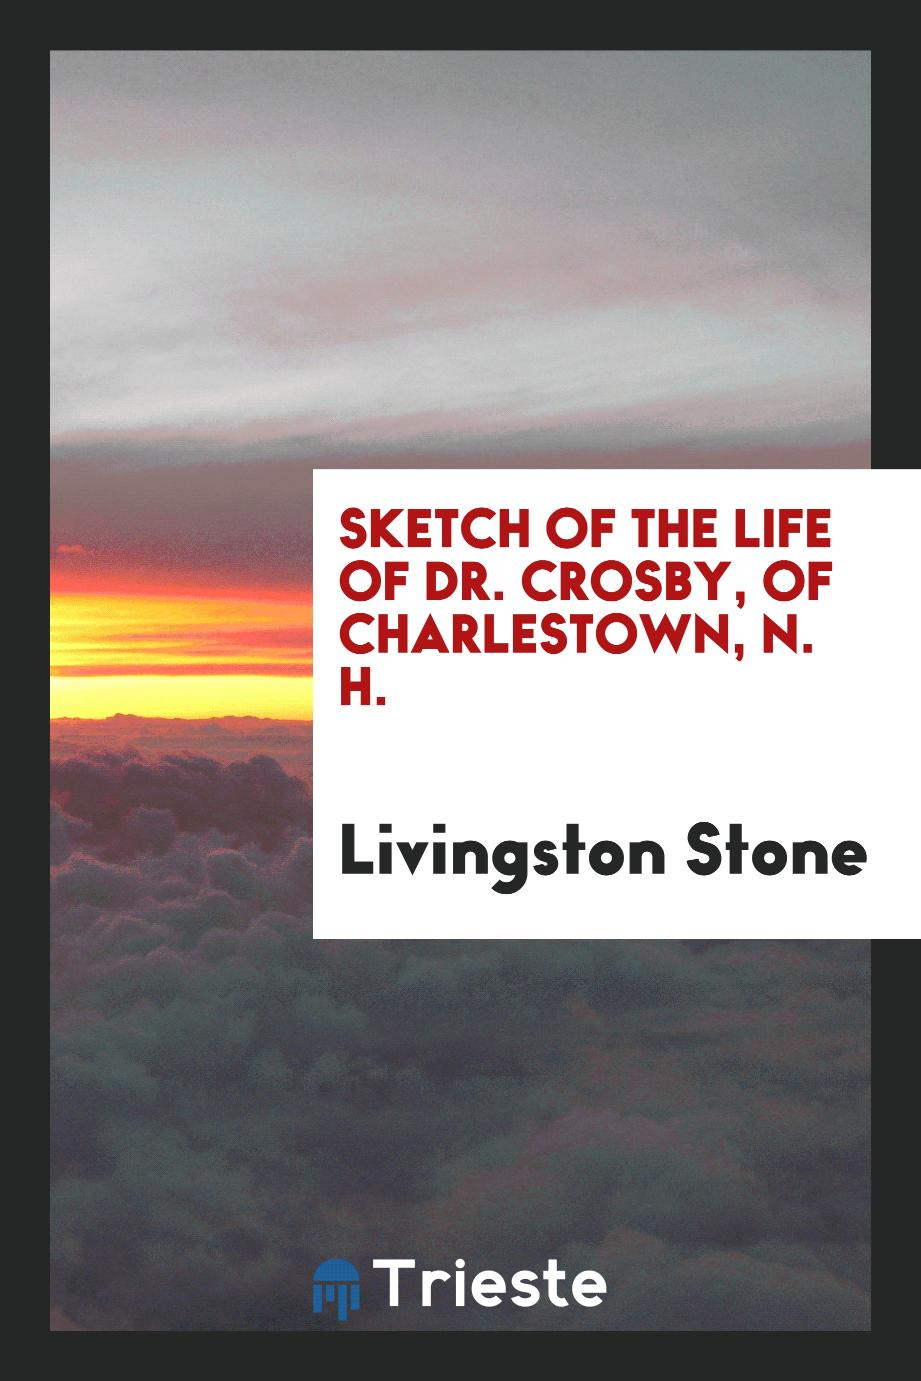 Sketch of the Life of Dr. Crosby, of Charlestown, N. H.